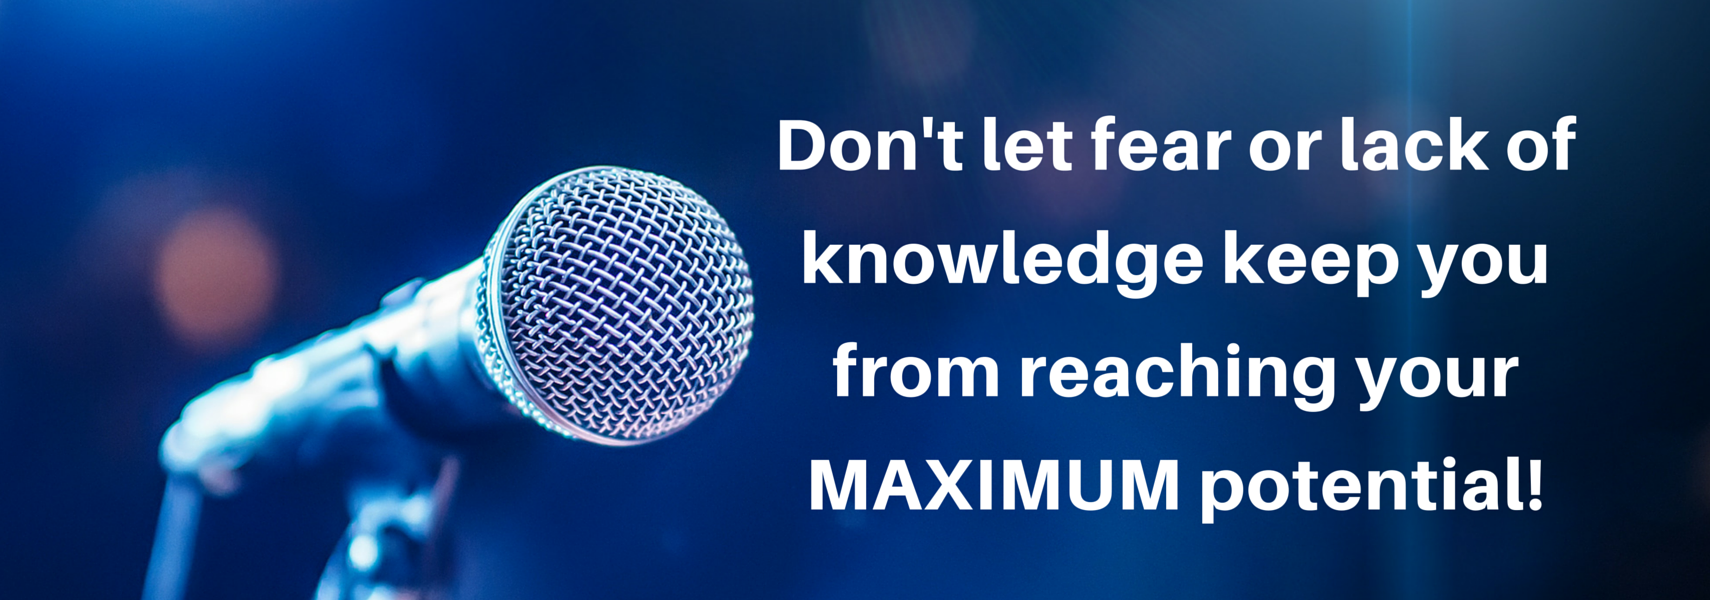 Don't let fear or lack of knowledge keep you from reaching your maximum potential!